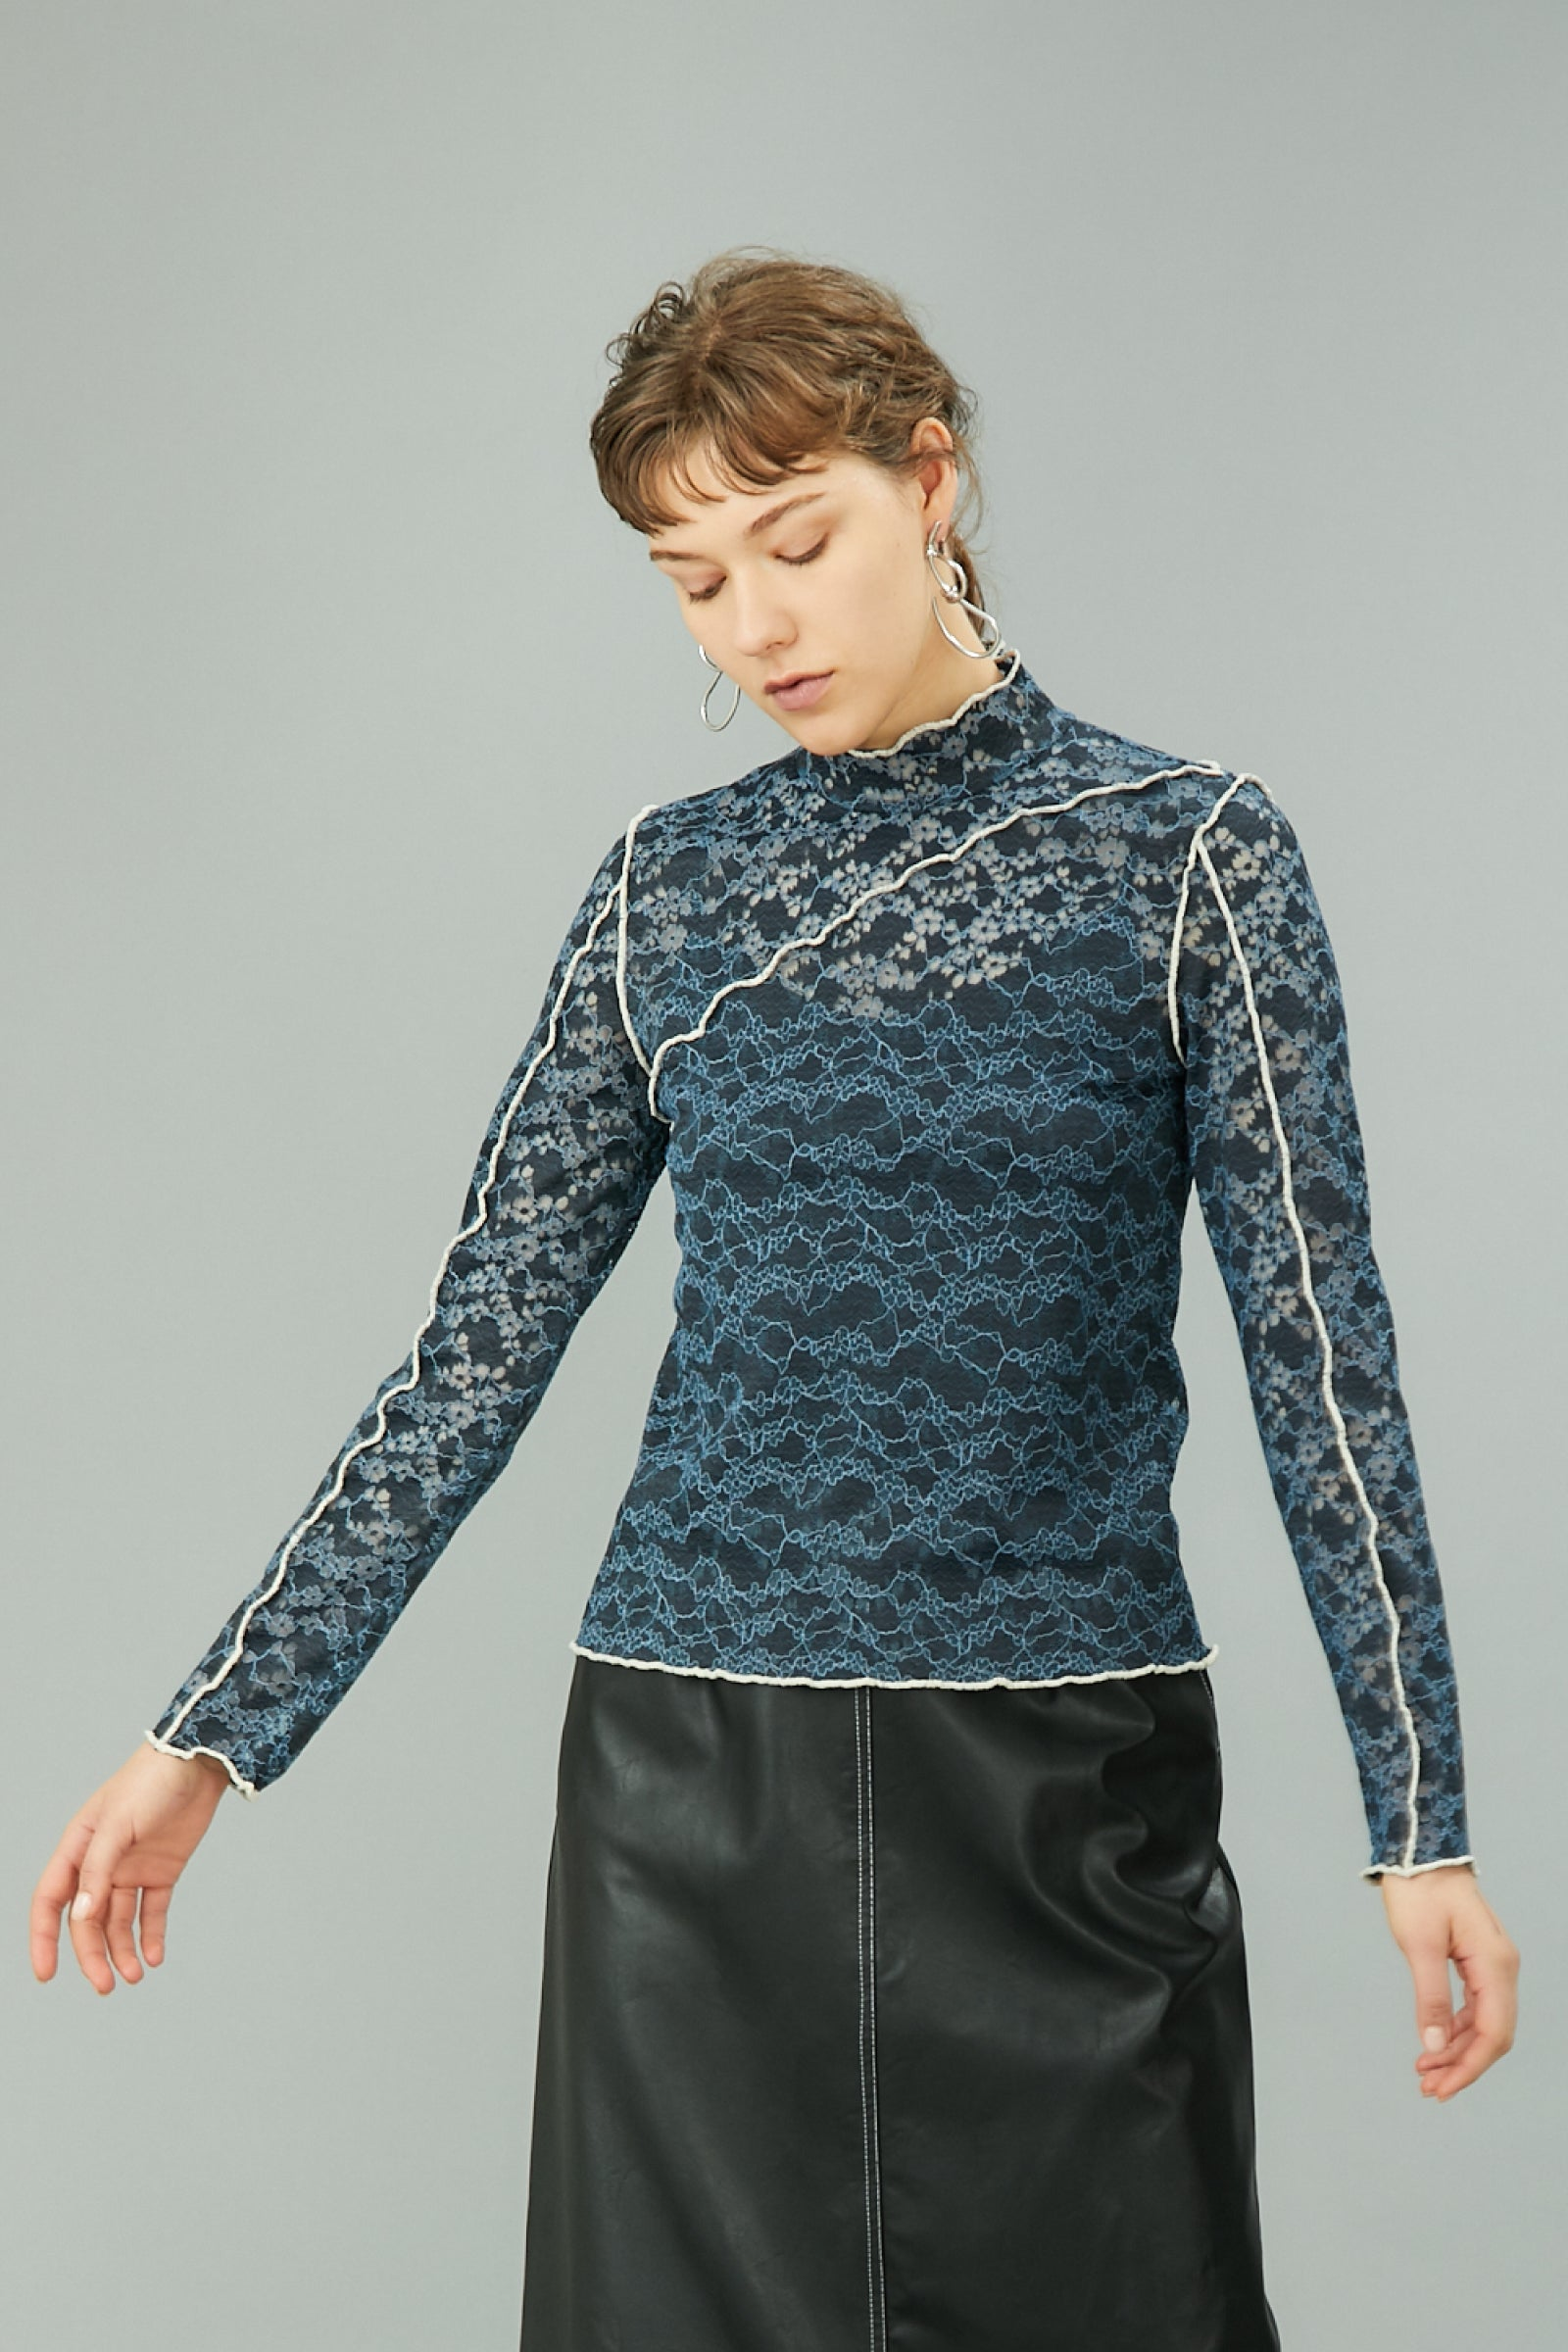 MURRAL stretch lace top (blue)